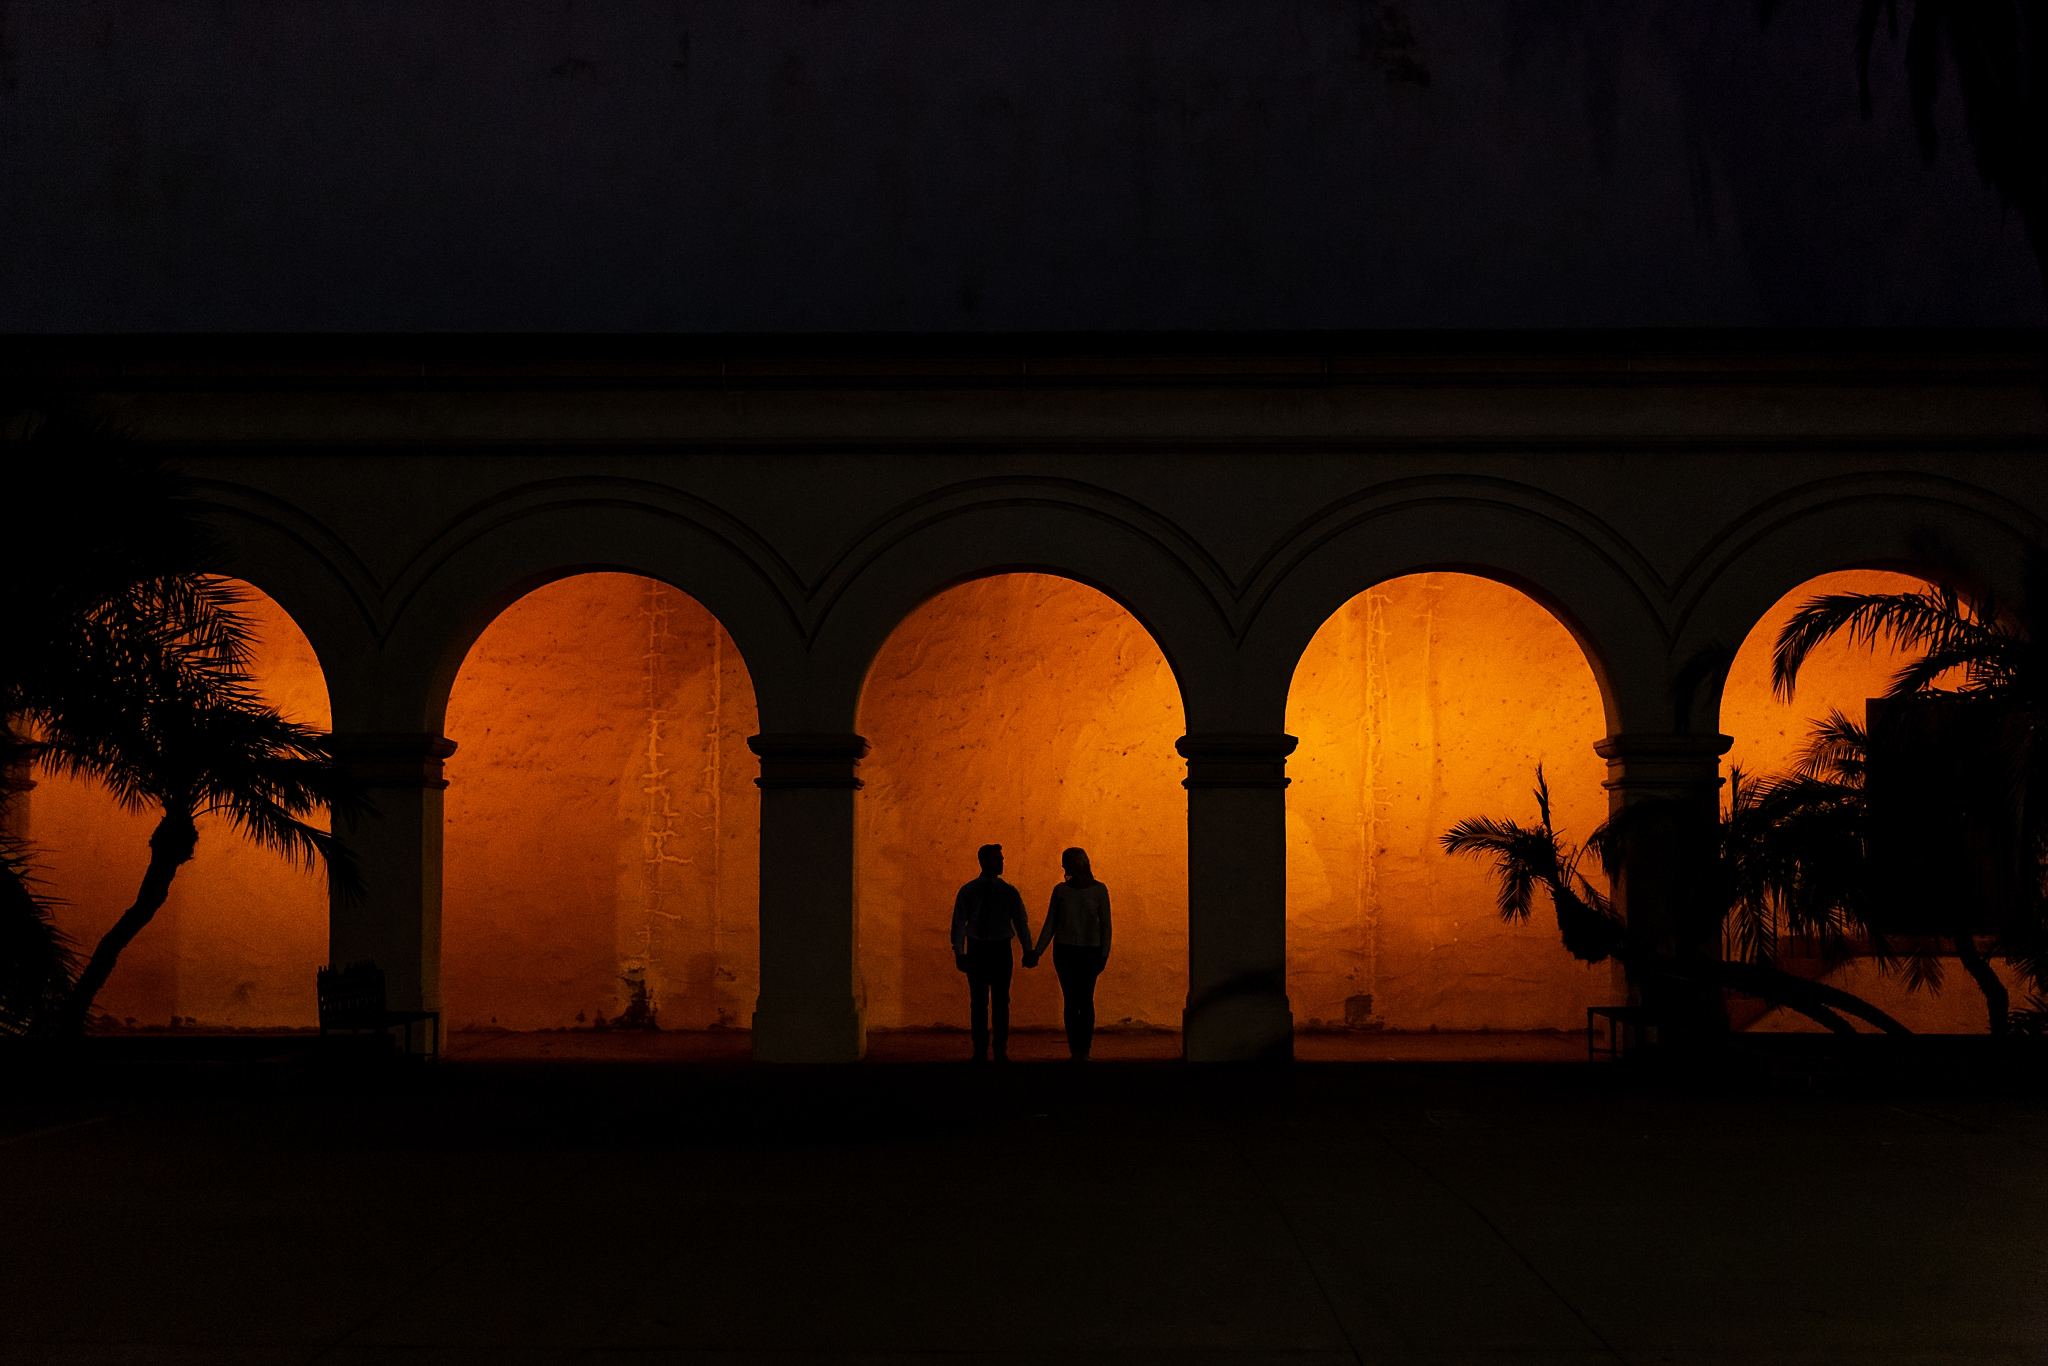 Balboa Park Engagement Session, San Diego California. Silhouettes.